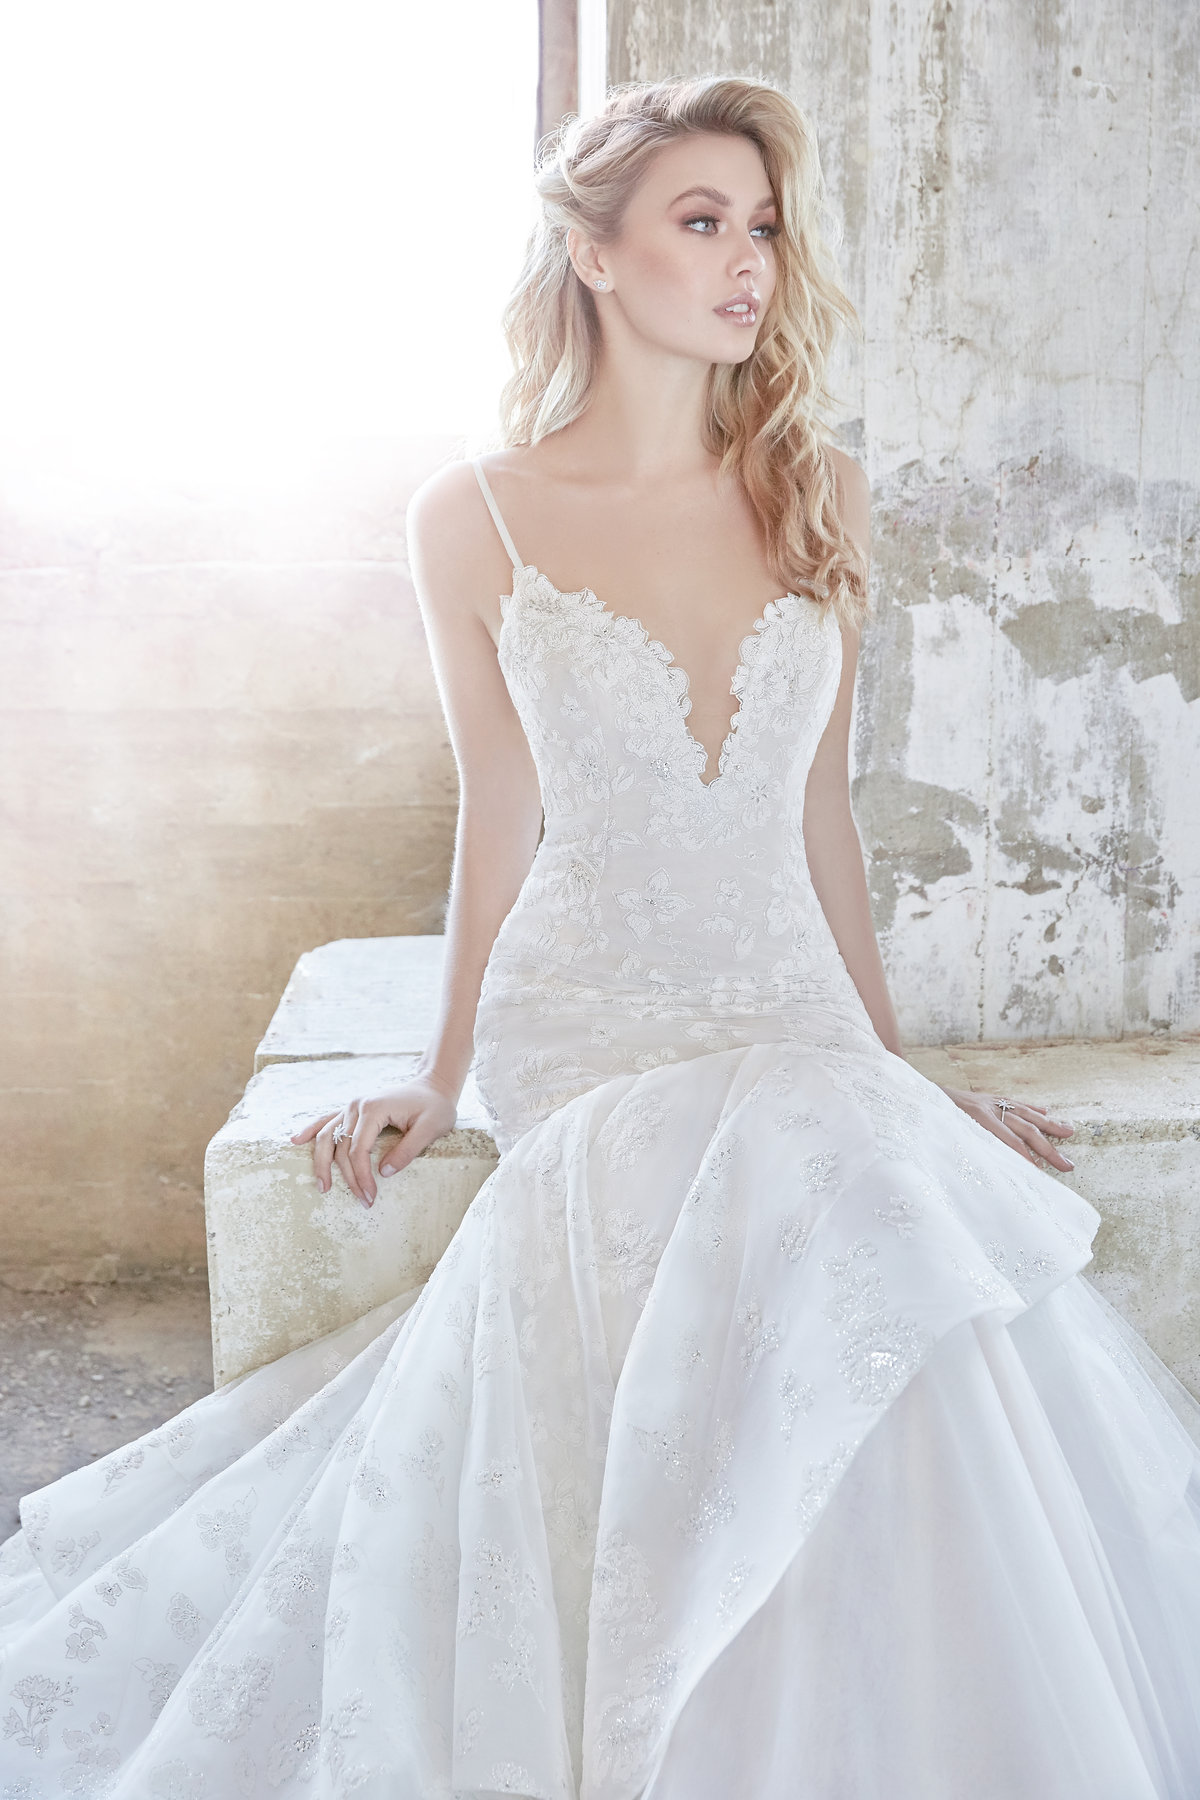 Where to find hayley paige wedding dresses-8017